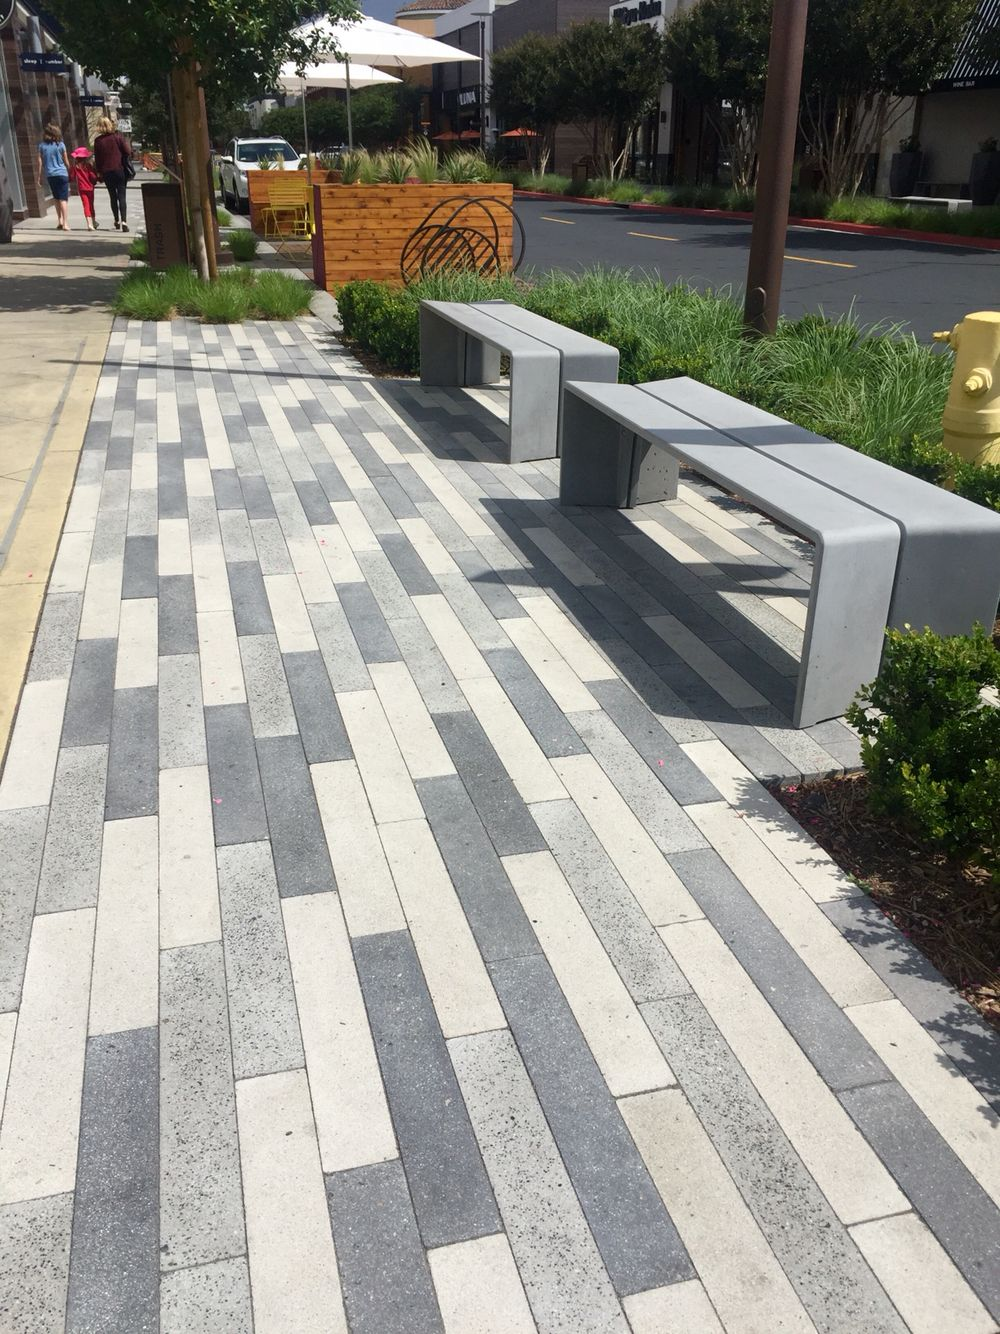 Our Linear Pavers Look Amazing At Victoria Gardens